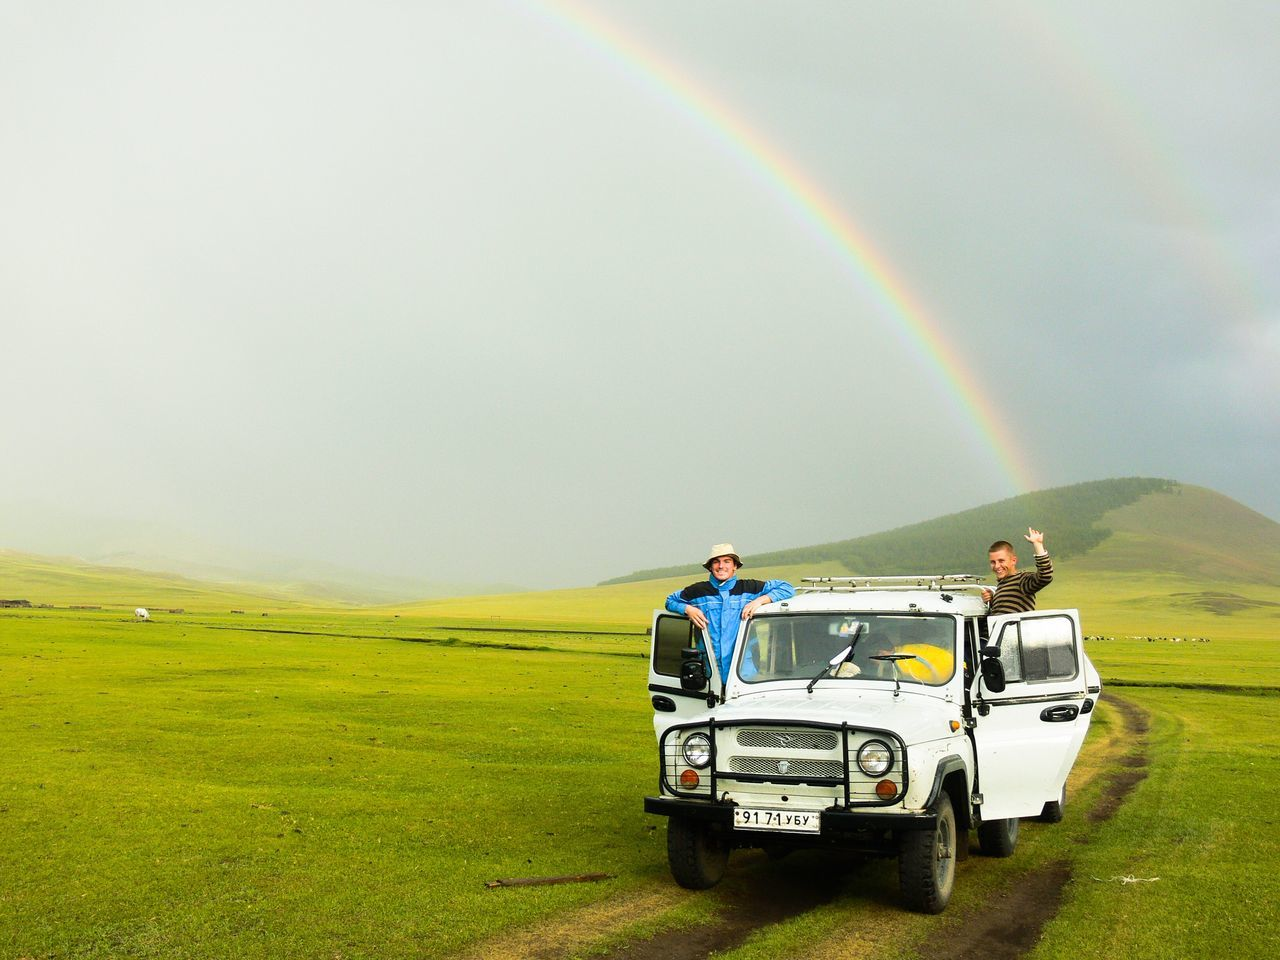 Two People Beauty In Nature Nature Scenics People Young Adult Adults Only Outdoors Community Outreach Full Length Rainbow Pointing Adventure Mongolia Fresh Grassland Car Trip Tourism Travel Landscape Remote Tranquility Happy Transportation